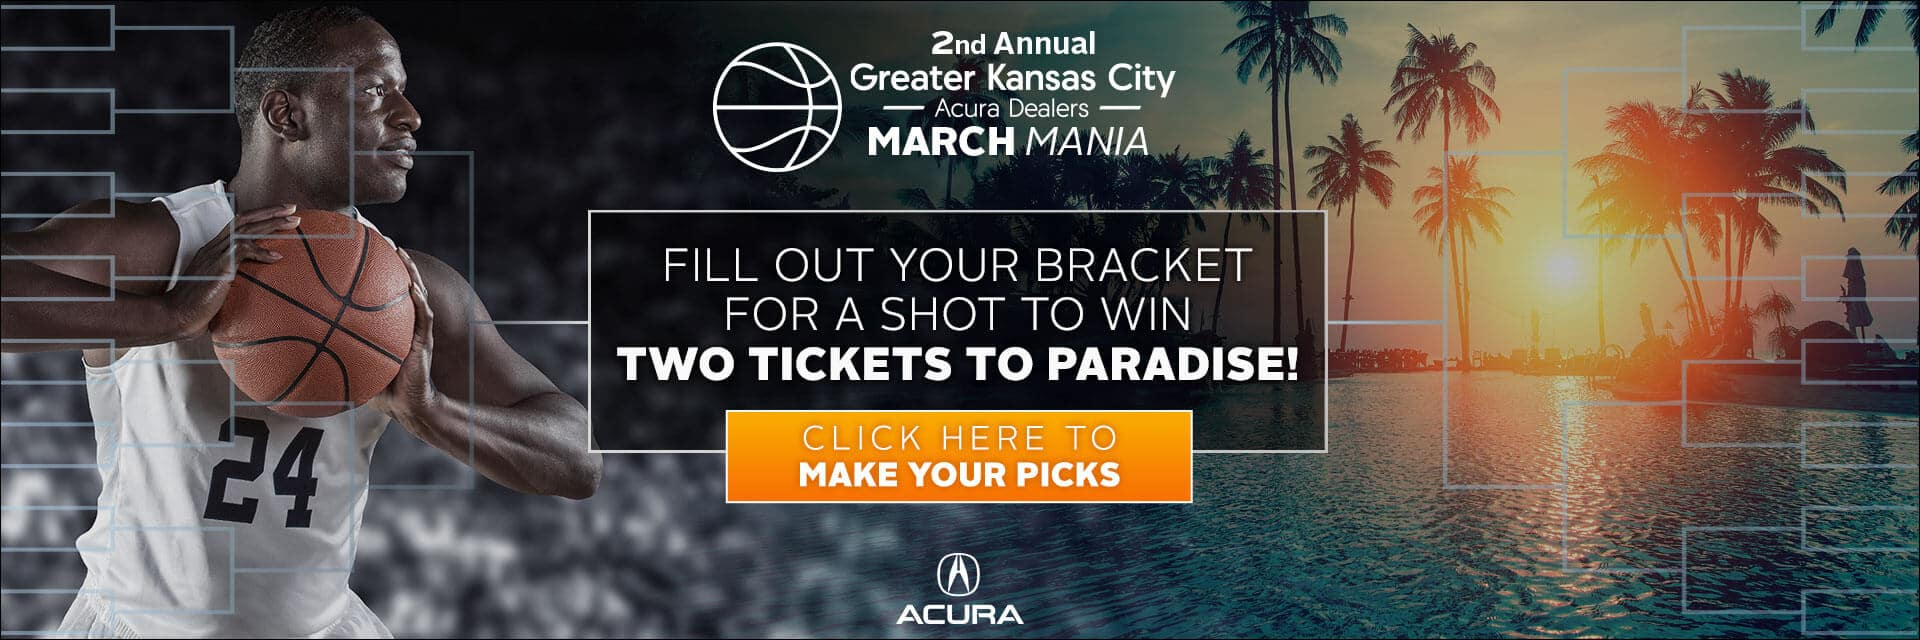 Kansas City Acura Dealers 2nd Annual March Mania Slider